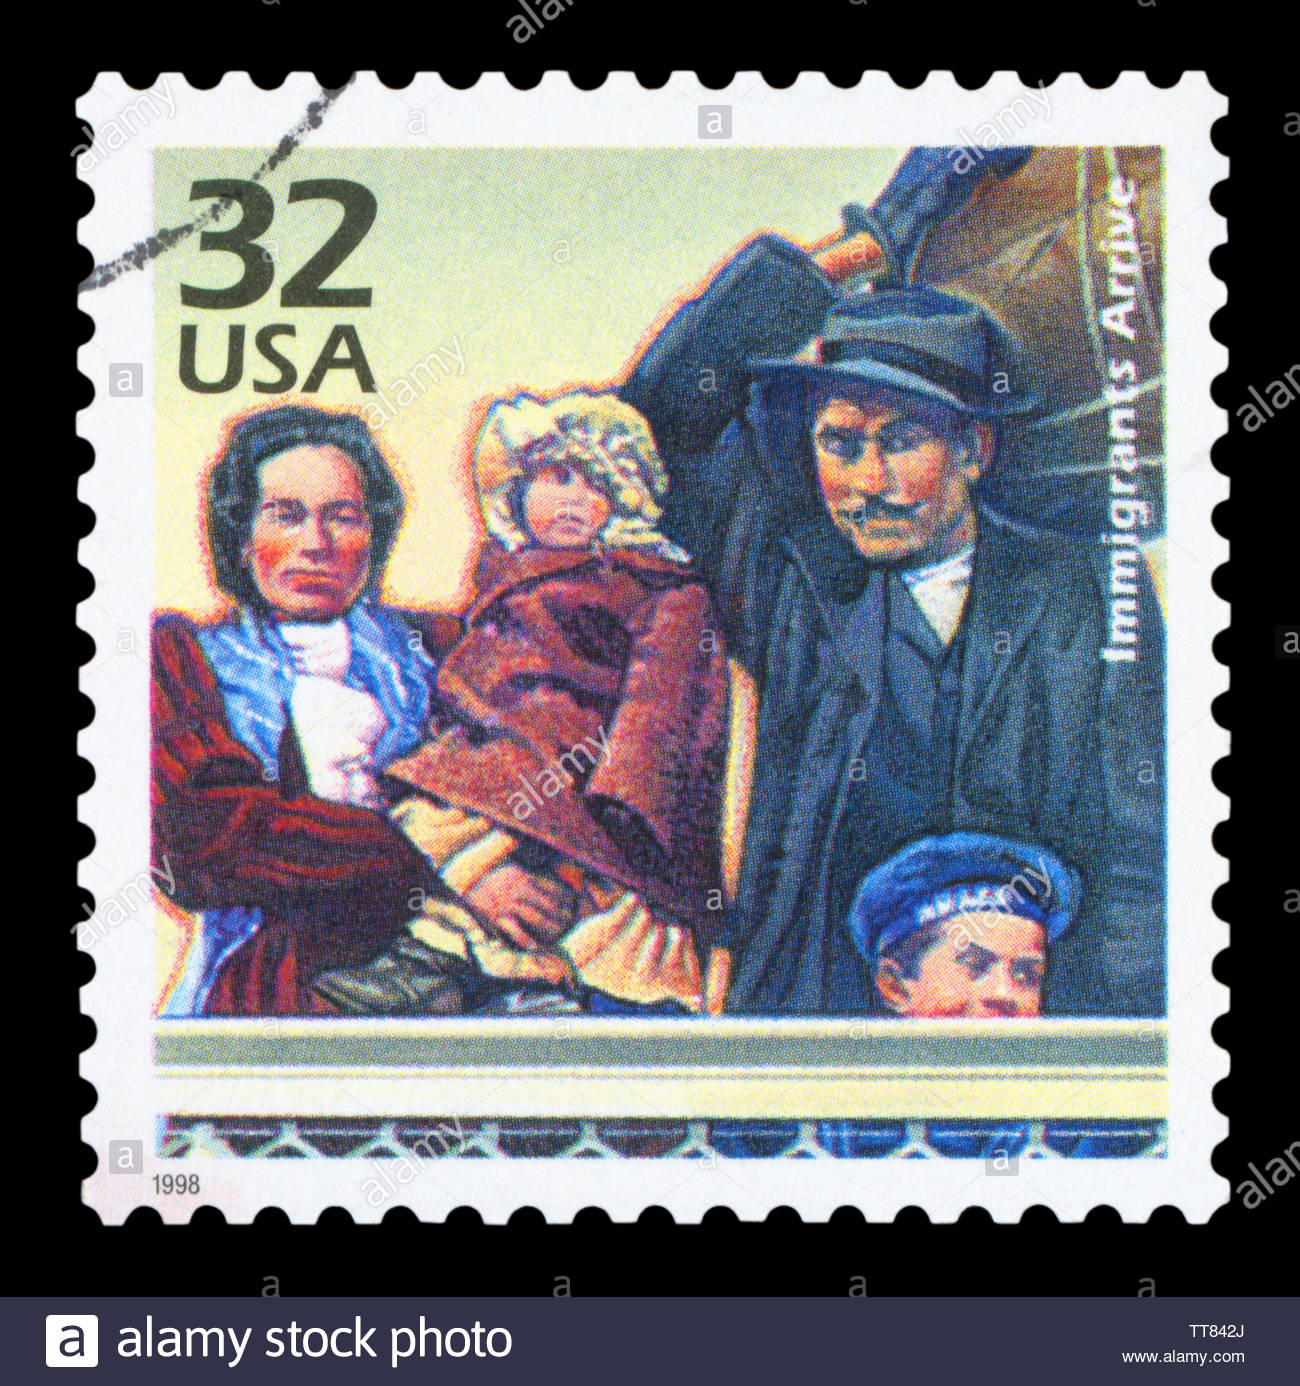 UNITED STATES OF AMERICA - CIRCA 1998: a postage stamp printed in USA showing an image of an immigrant family, circa 1998. - Stock Image